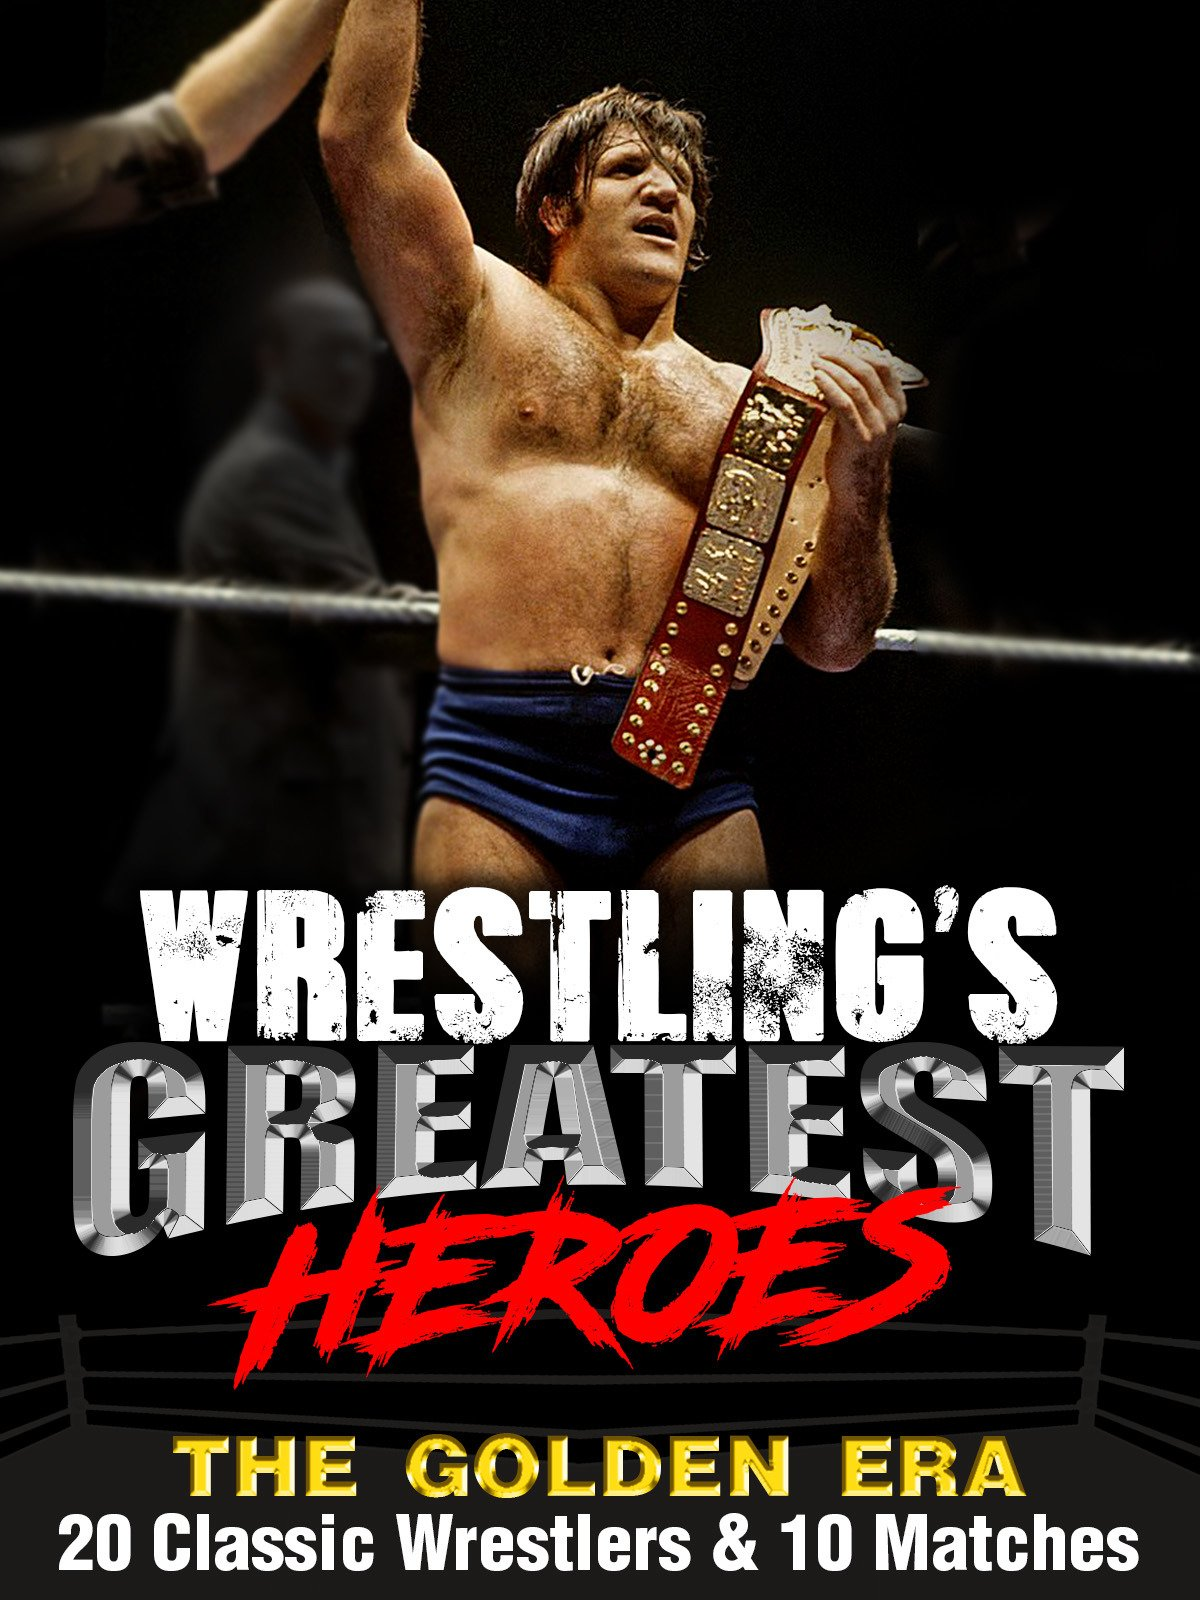 Wrestling's Greatest Heroes, The Golden Era: 20 Classic Wrestlers & 10 Matches